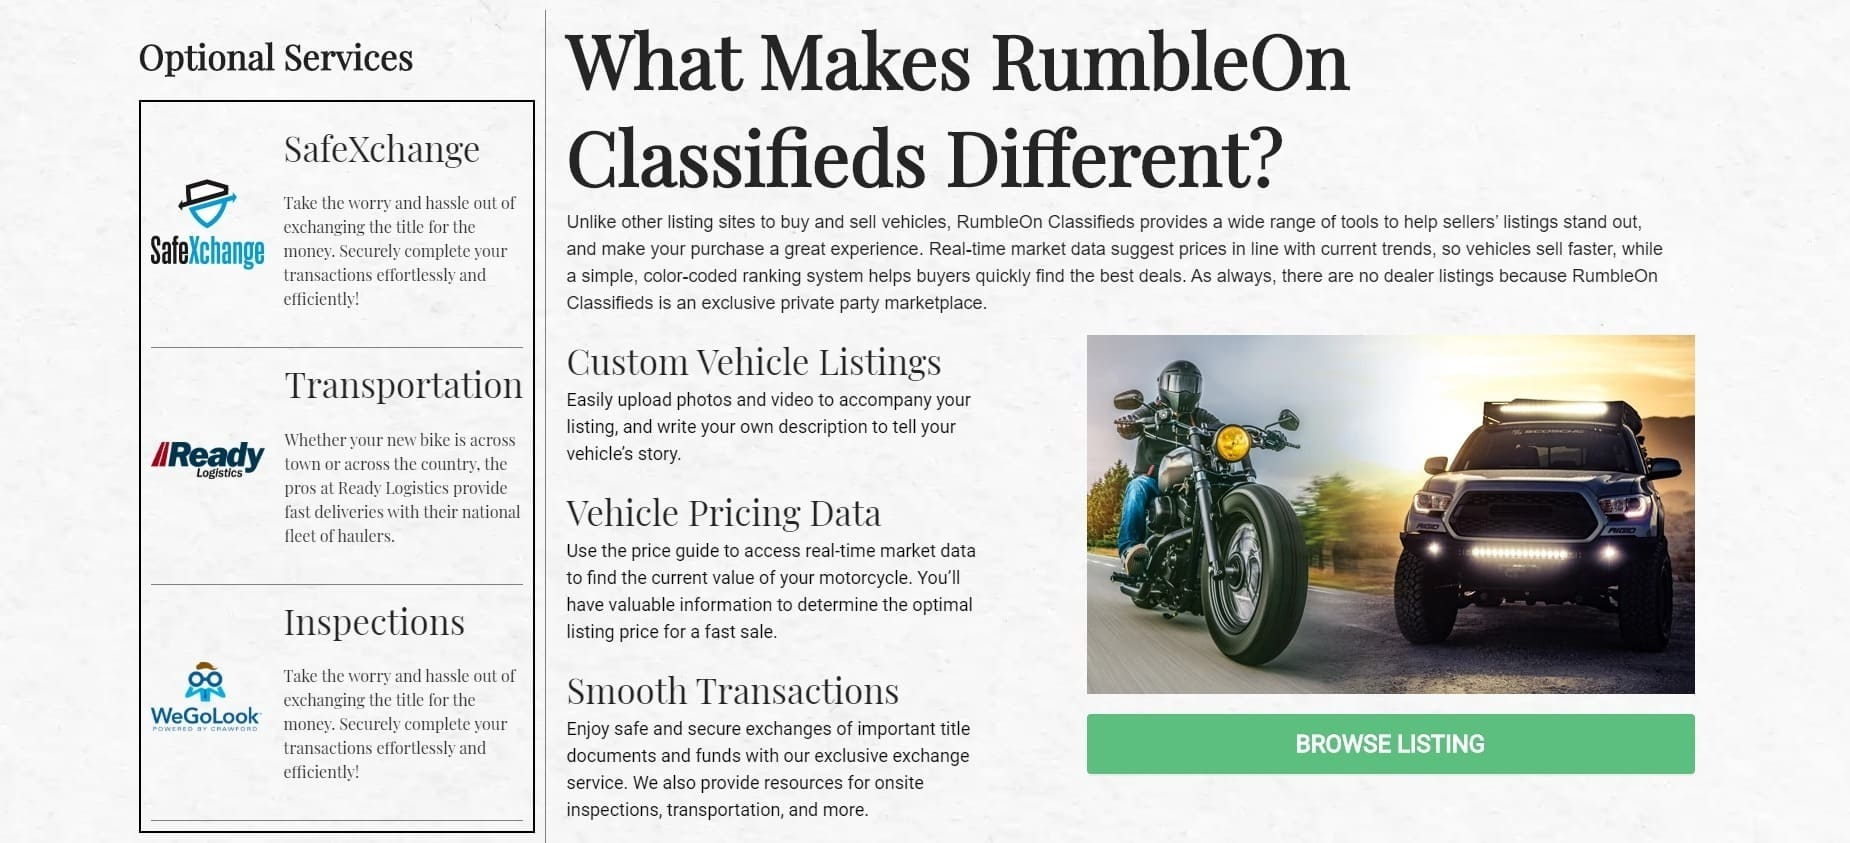 RumbleOn Classifieds